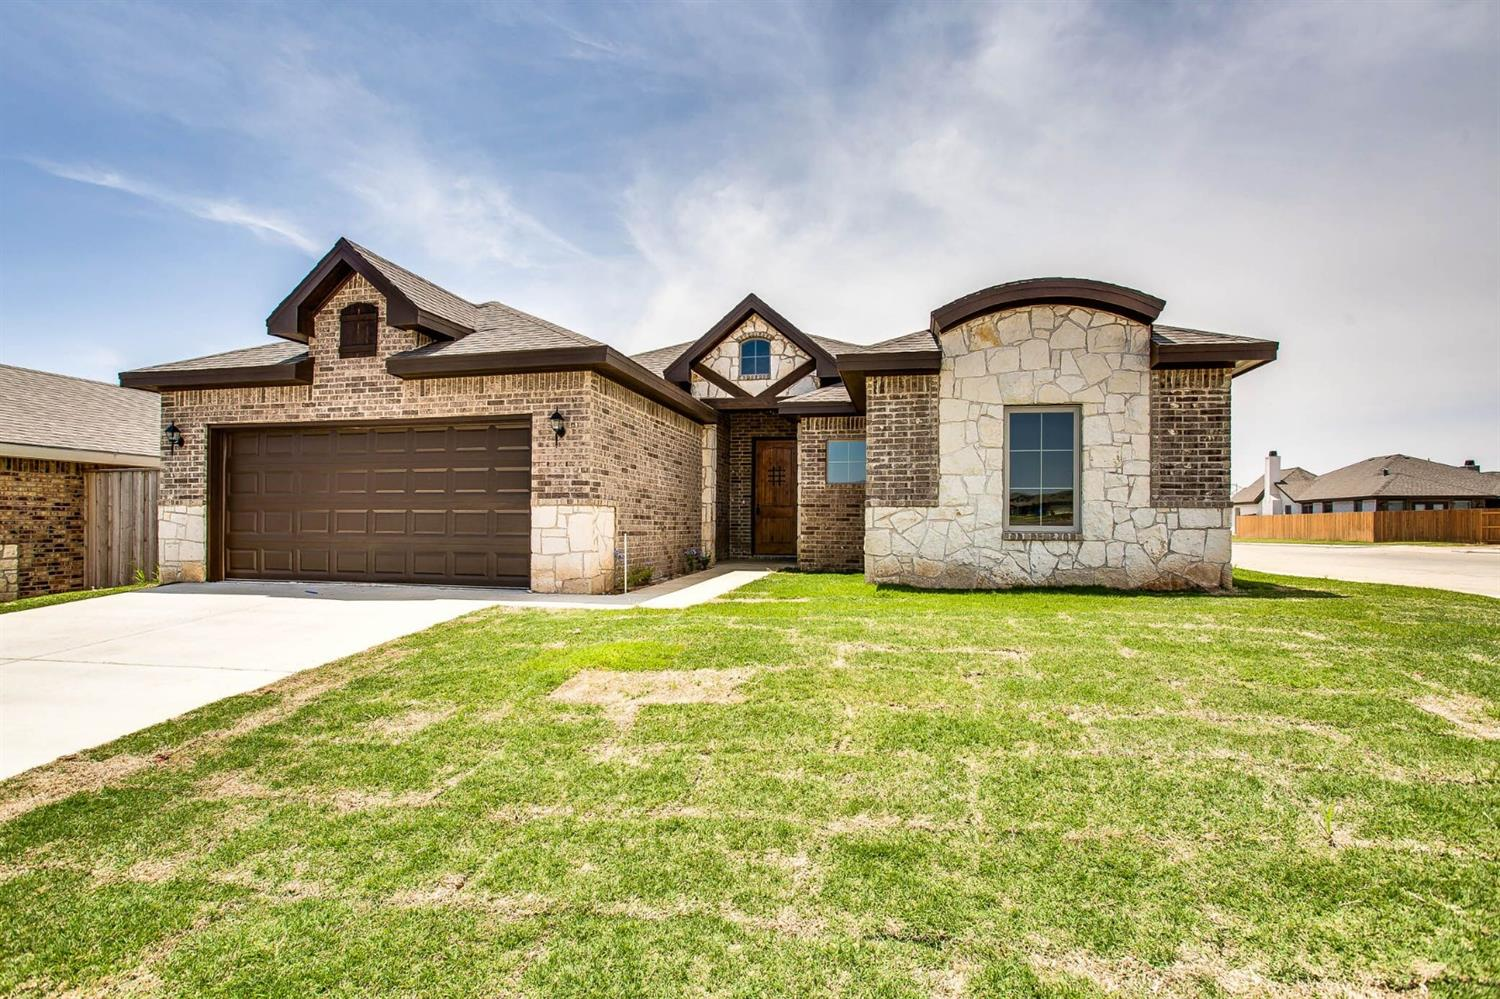 10302 Ave W, Lubbock in Lubbock County, TX 79423 Home for Sale